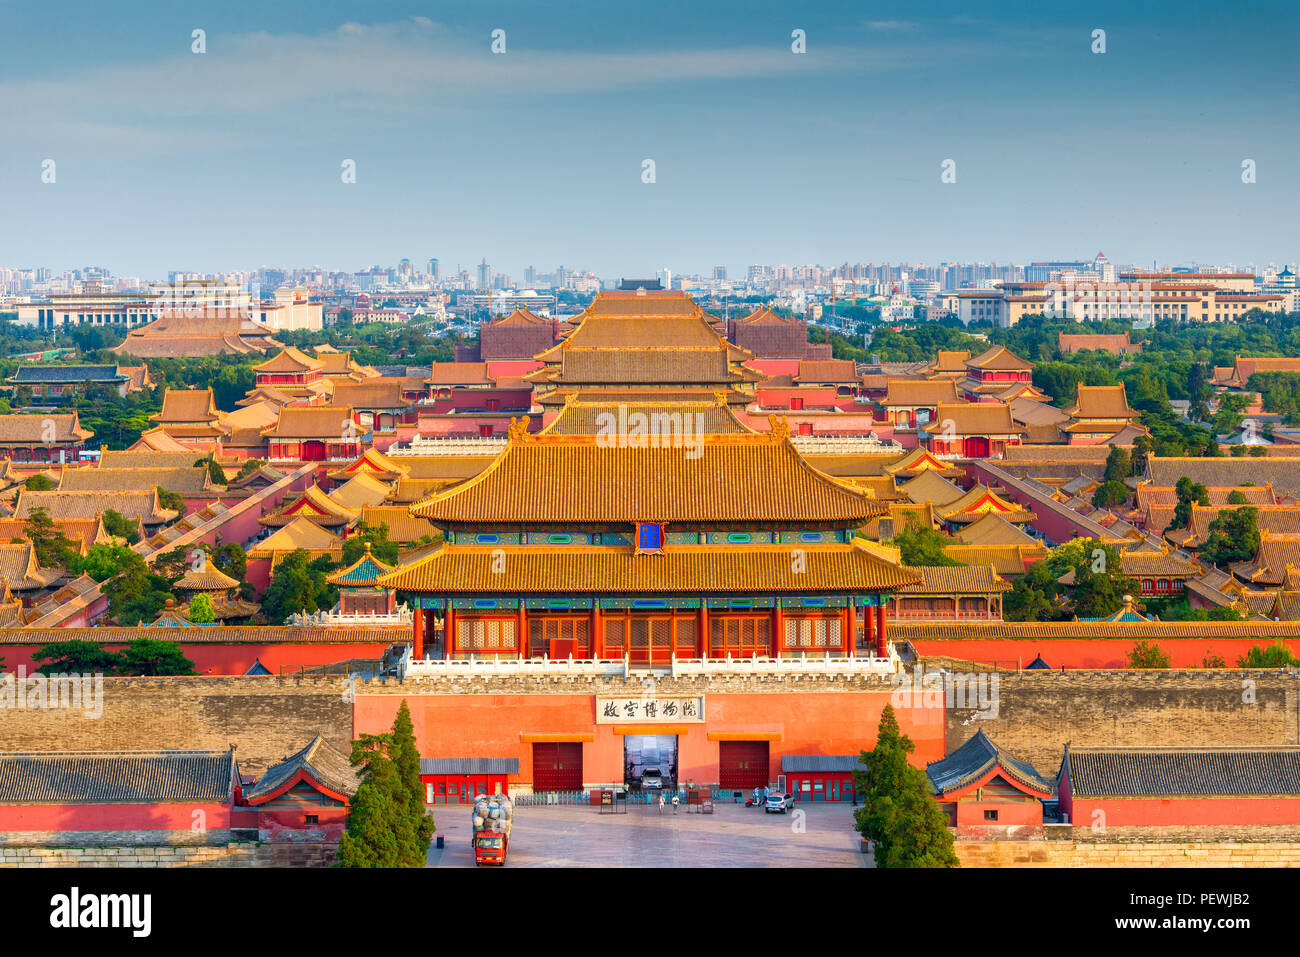 Beijing, China forbidden city outer wall and gate. Stock Photo